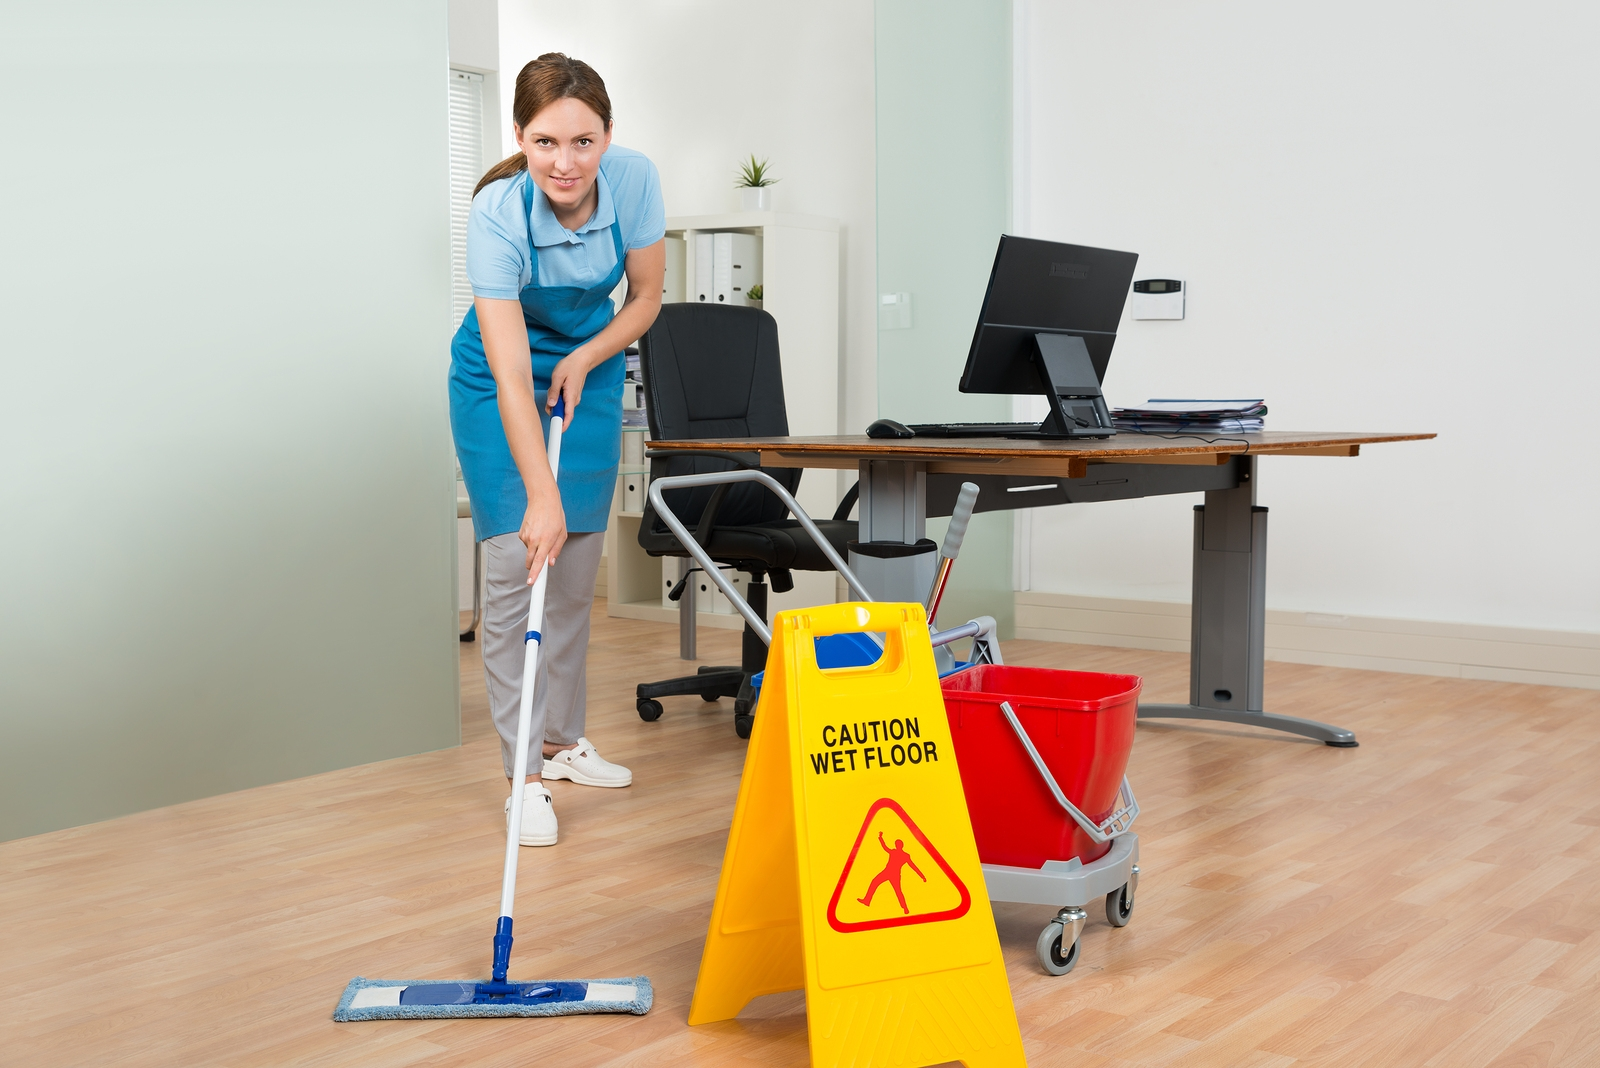 bigstock-Female-Janitor-Cleaning-Hardwo-98662658